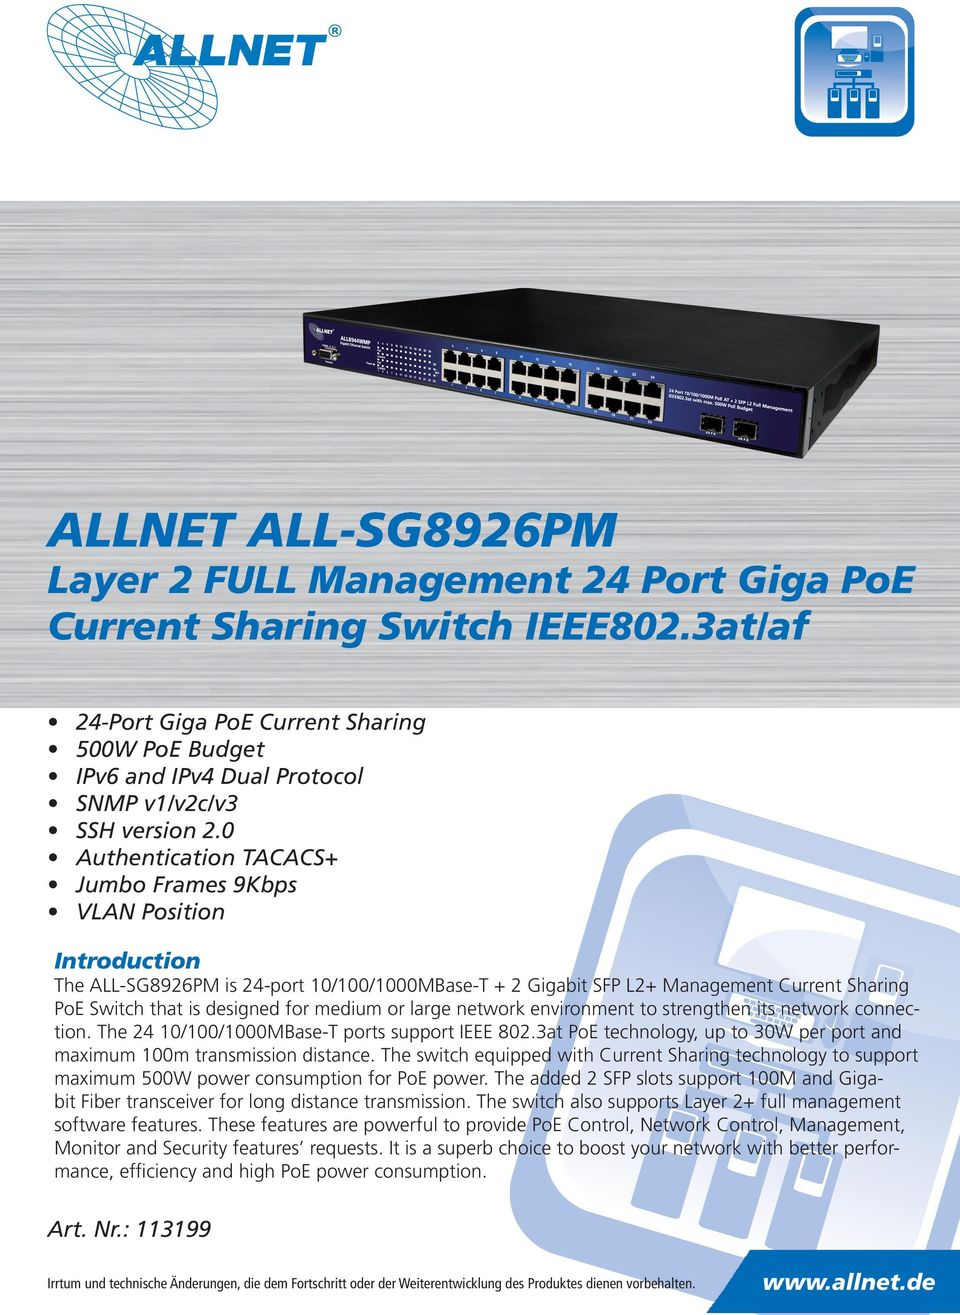 0 Authentication TACACS+ Jumbo Frames 9Kbps VLAN Position Introduction The ALL-SG8926PM is 24-port 10/100/1000MBase-T + 2 Gigabit SFP L2+ Management Current Sharing PoE Switch that is designed for